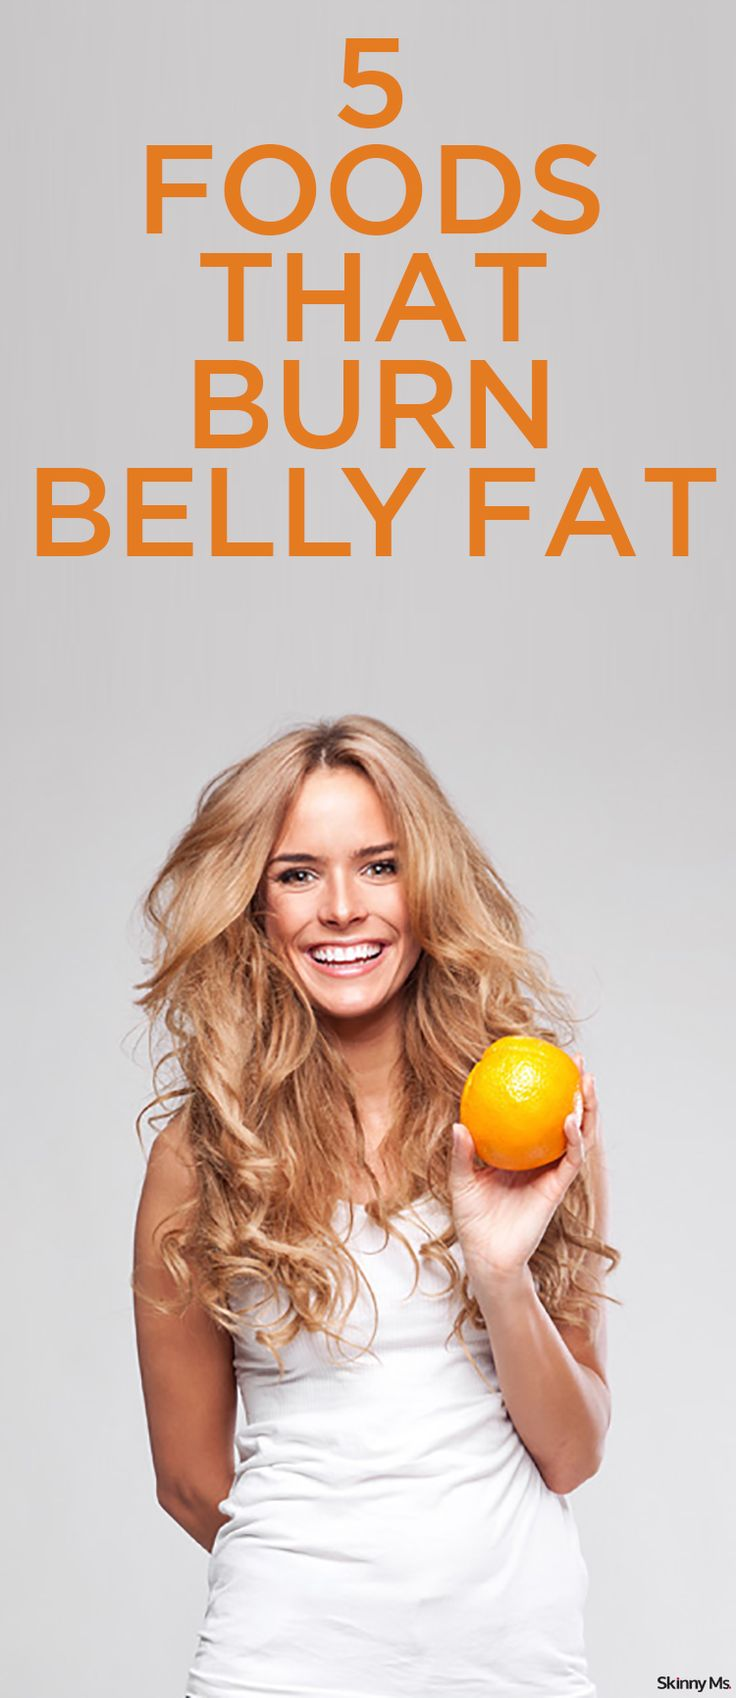 How to remove valley fat image 2